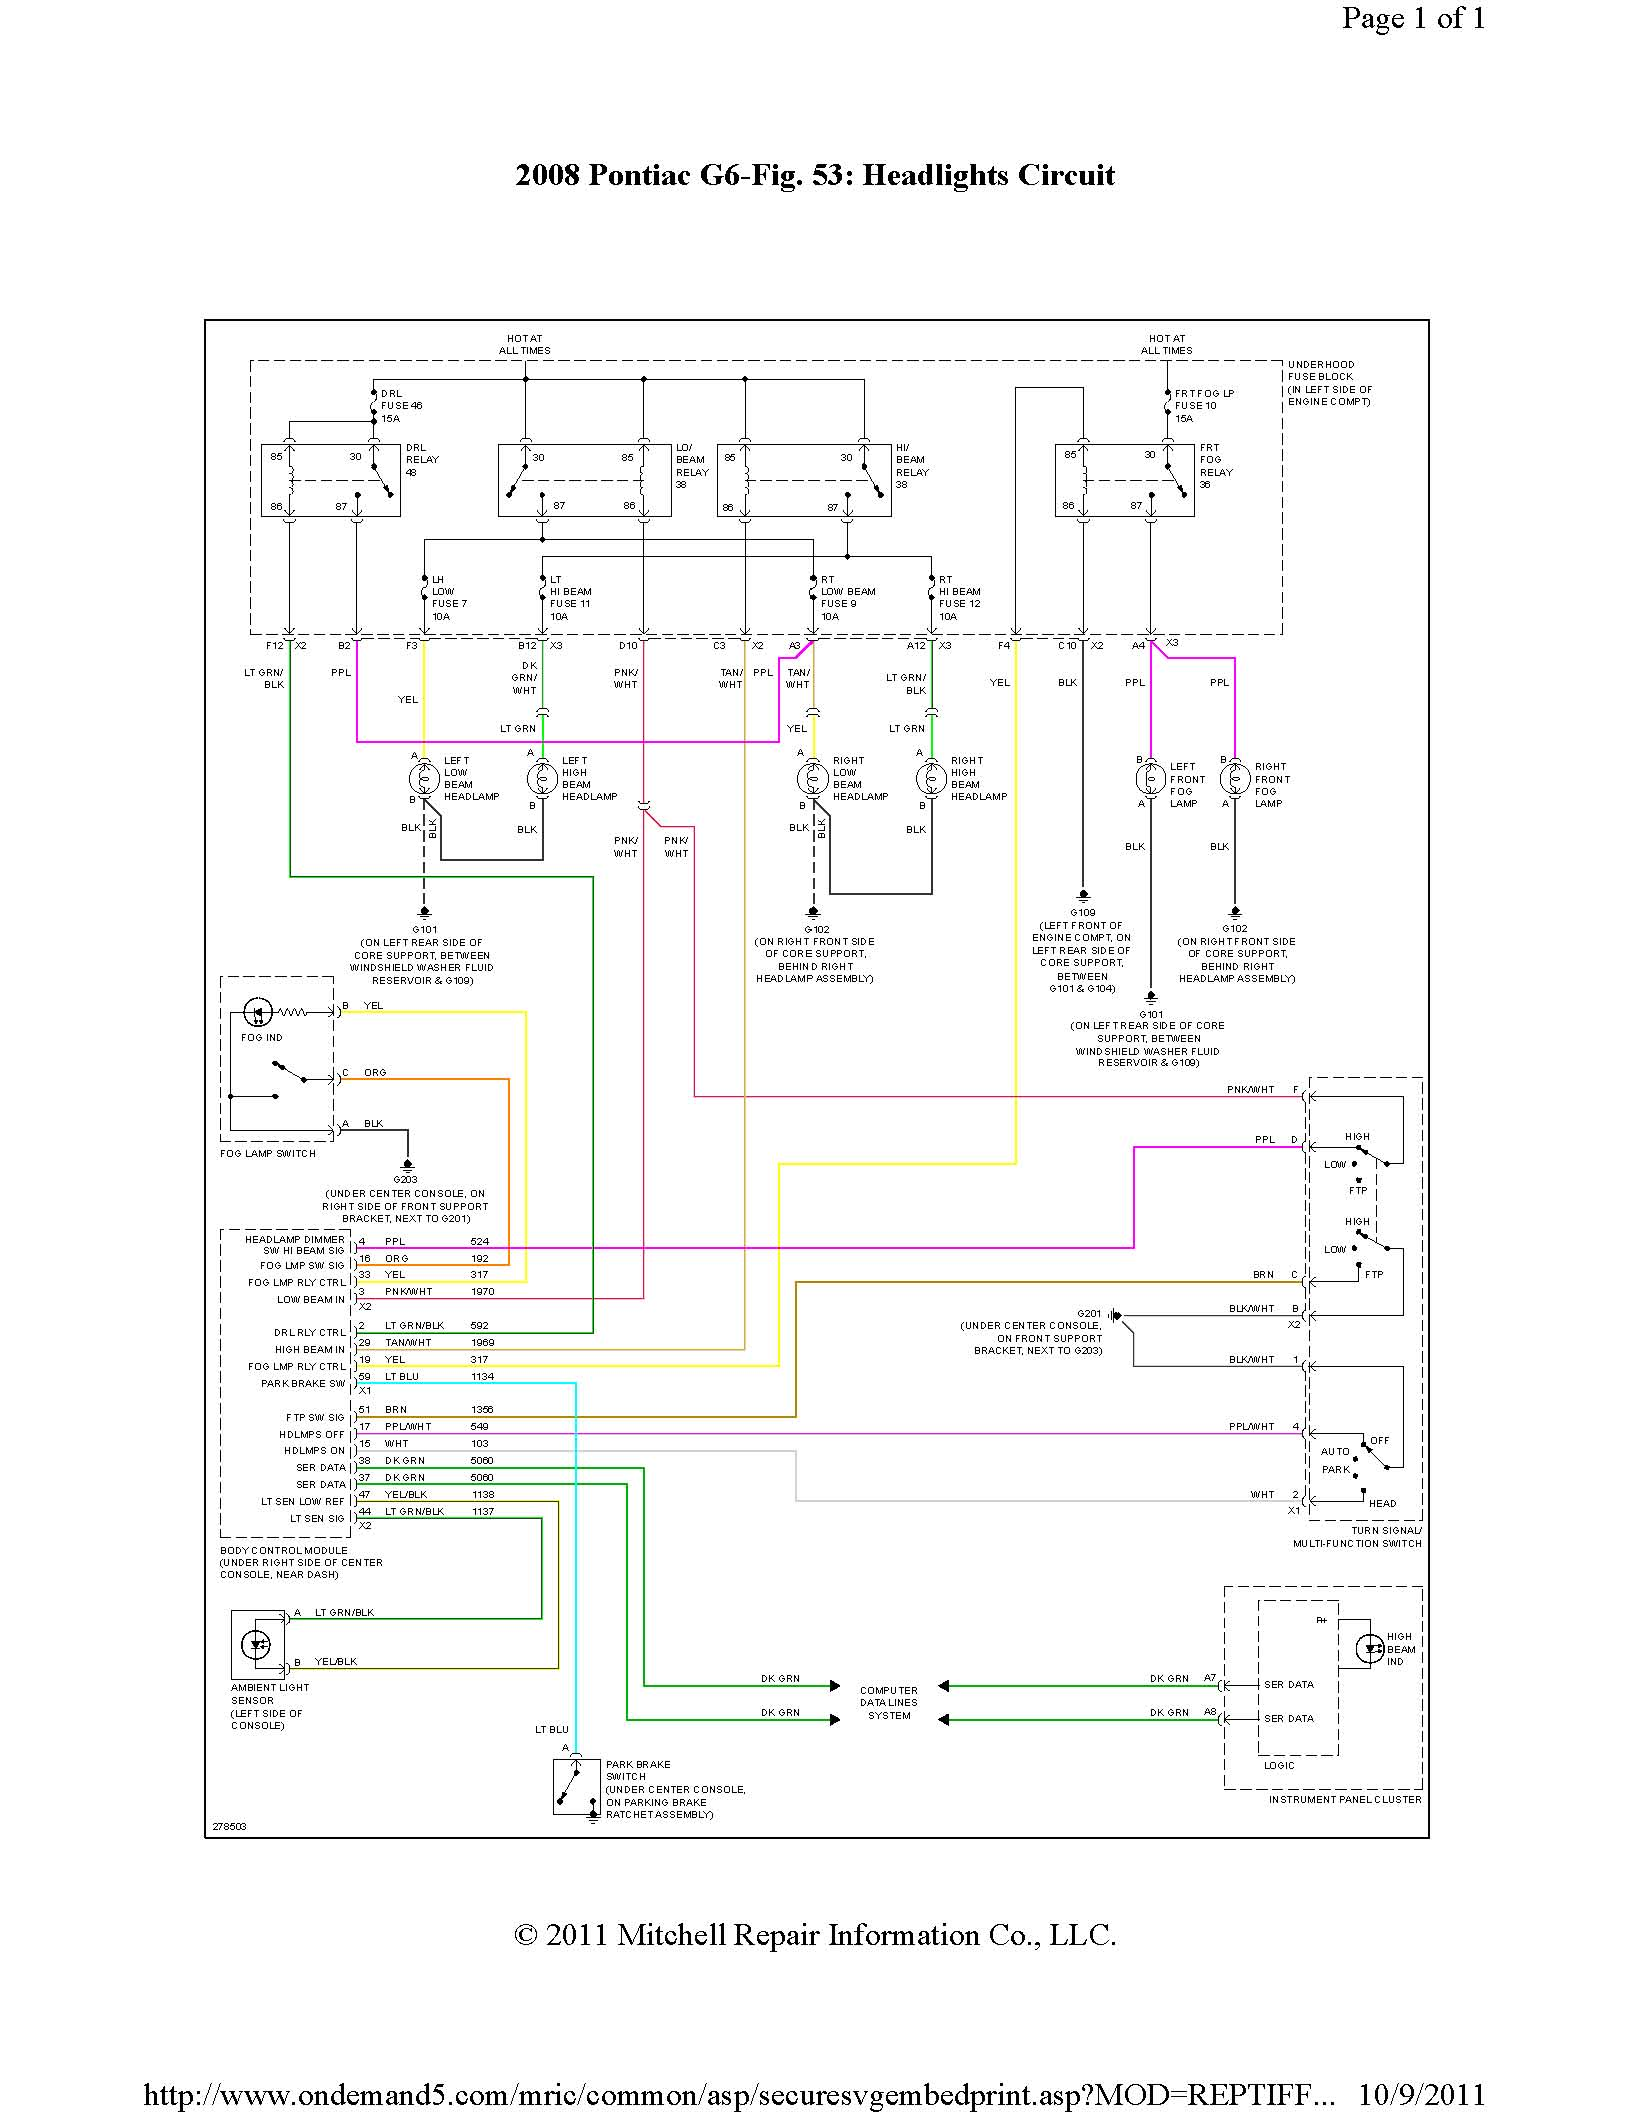 G6 Engine Wiring Diagram Great Installation Of To A 38 Chevy Headlight Switch Wire Pontiac Schematic Diagrams Rh 50 Koch Foerderbandtrommeln De 2010 Cobalt Mariner 150 Magnum